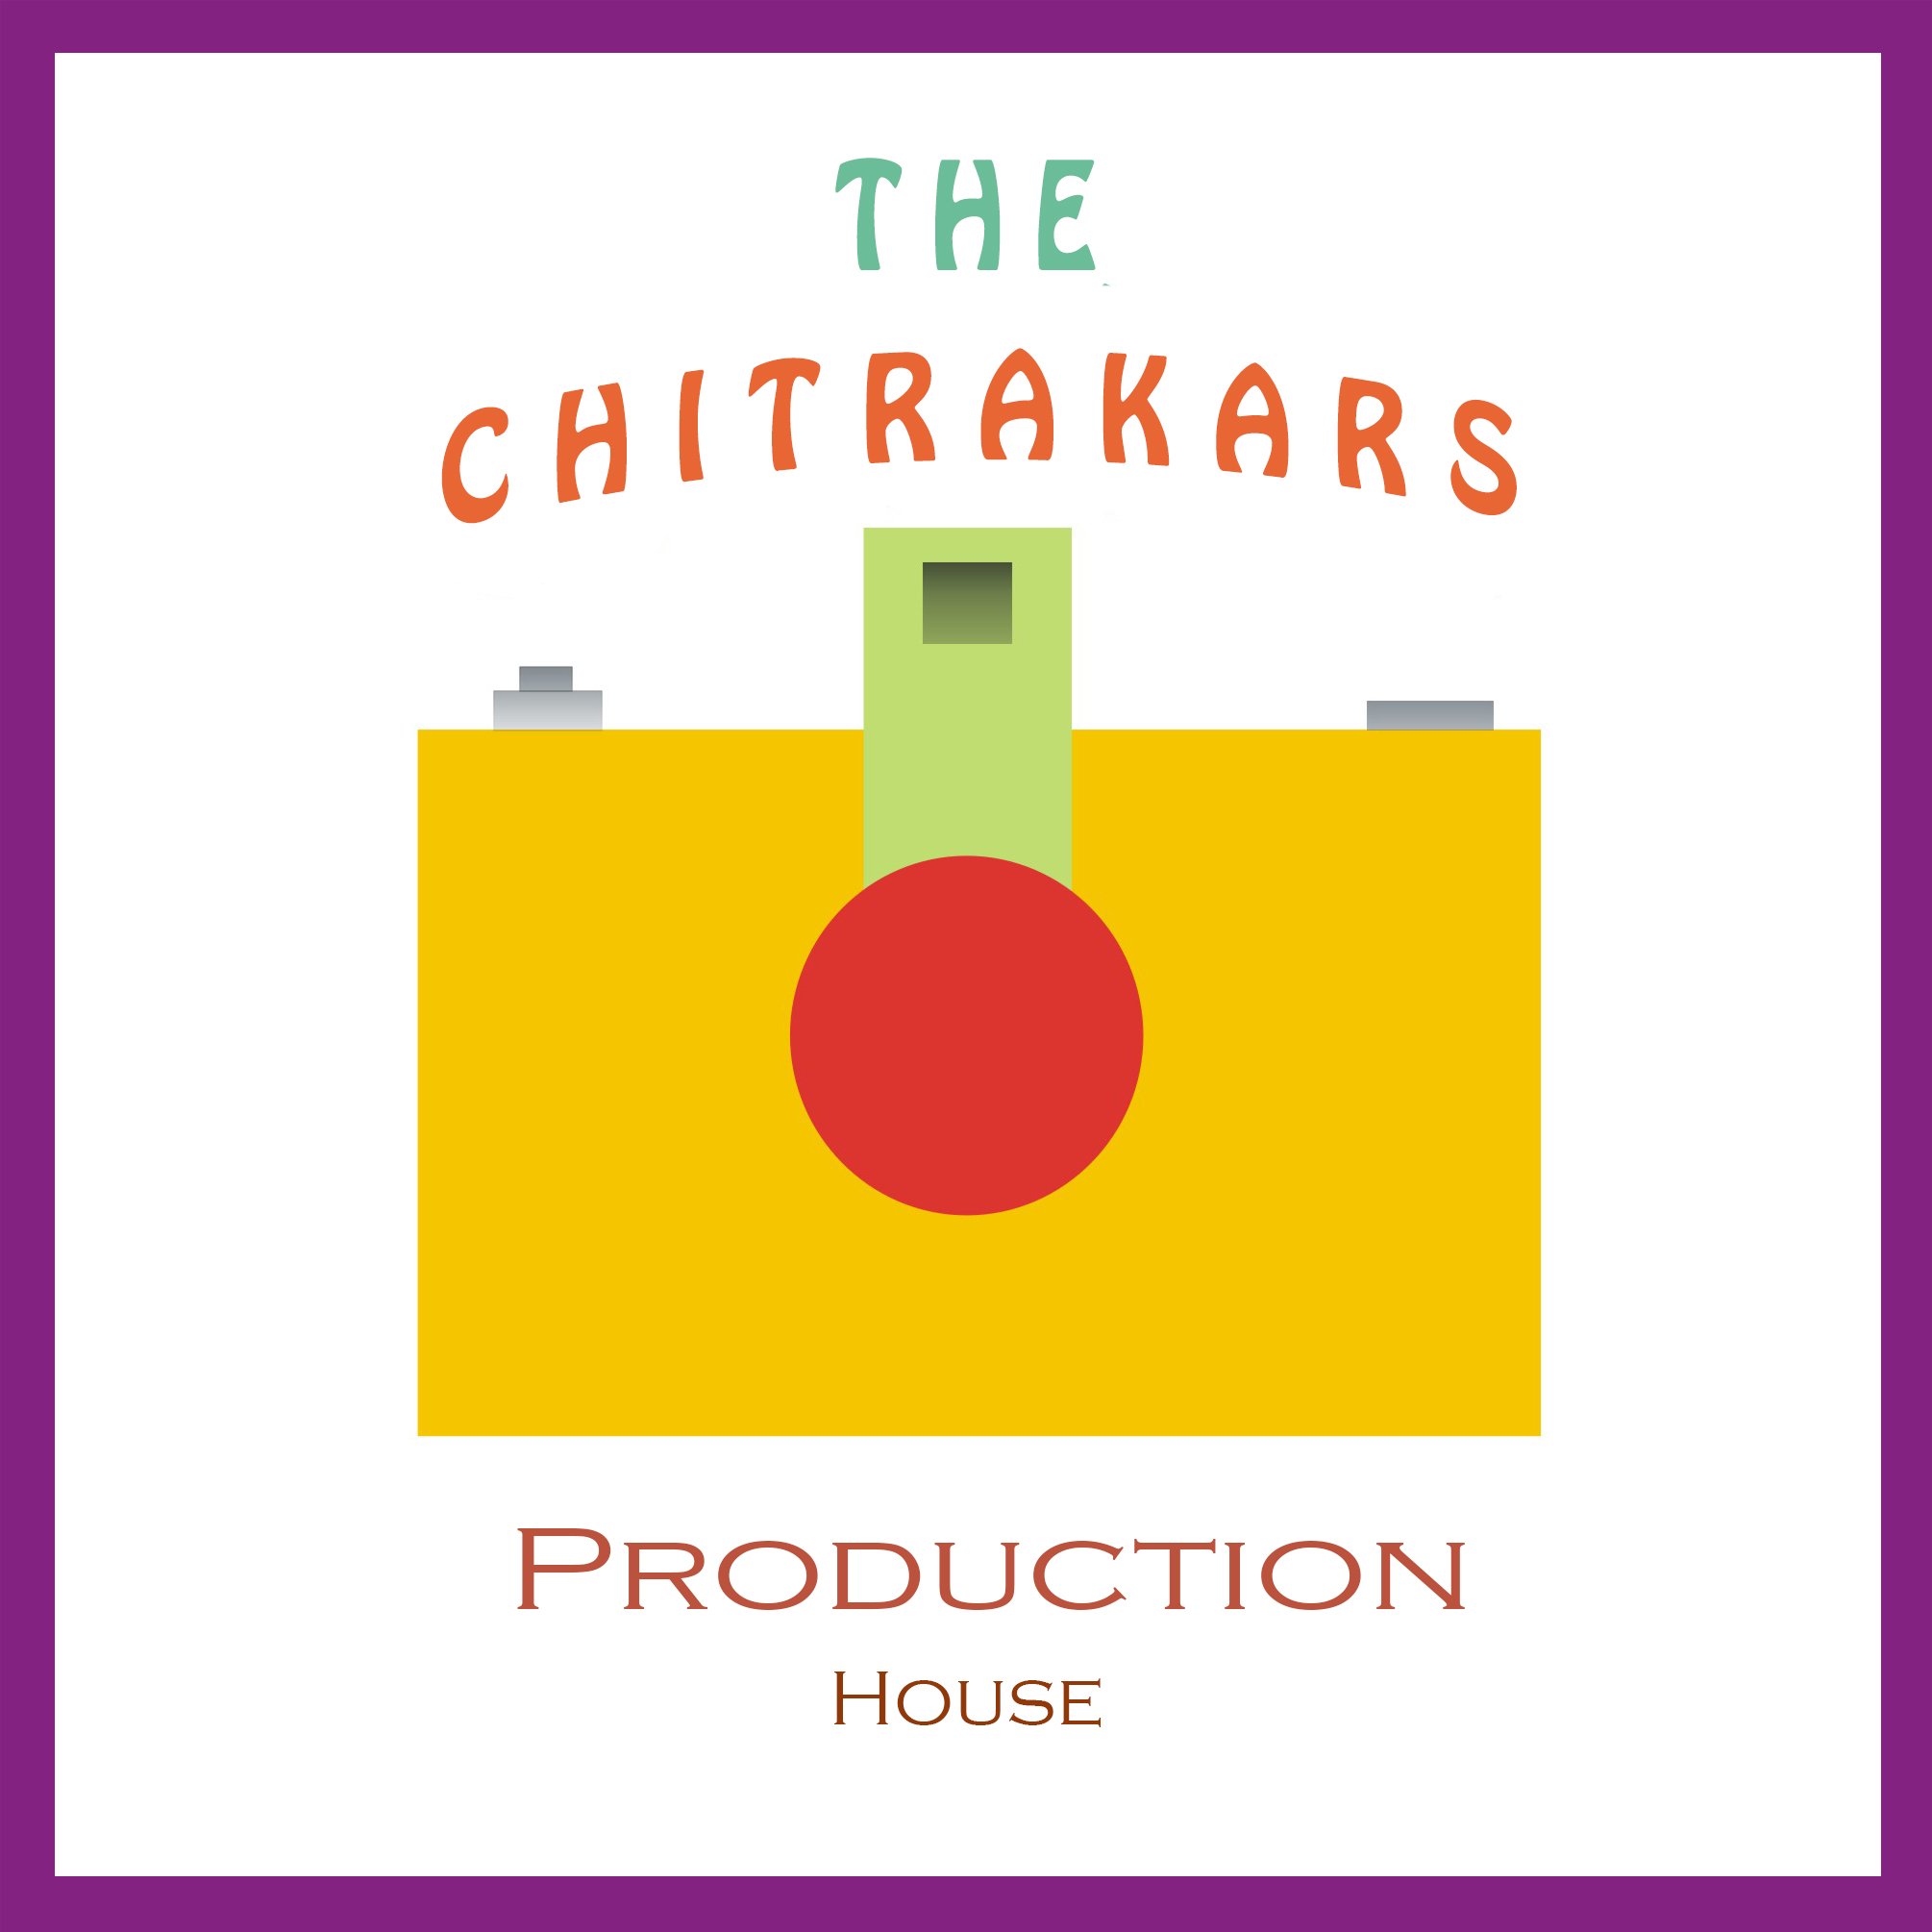 The Chitrakars Production House